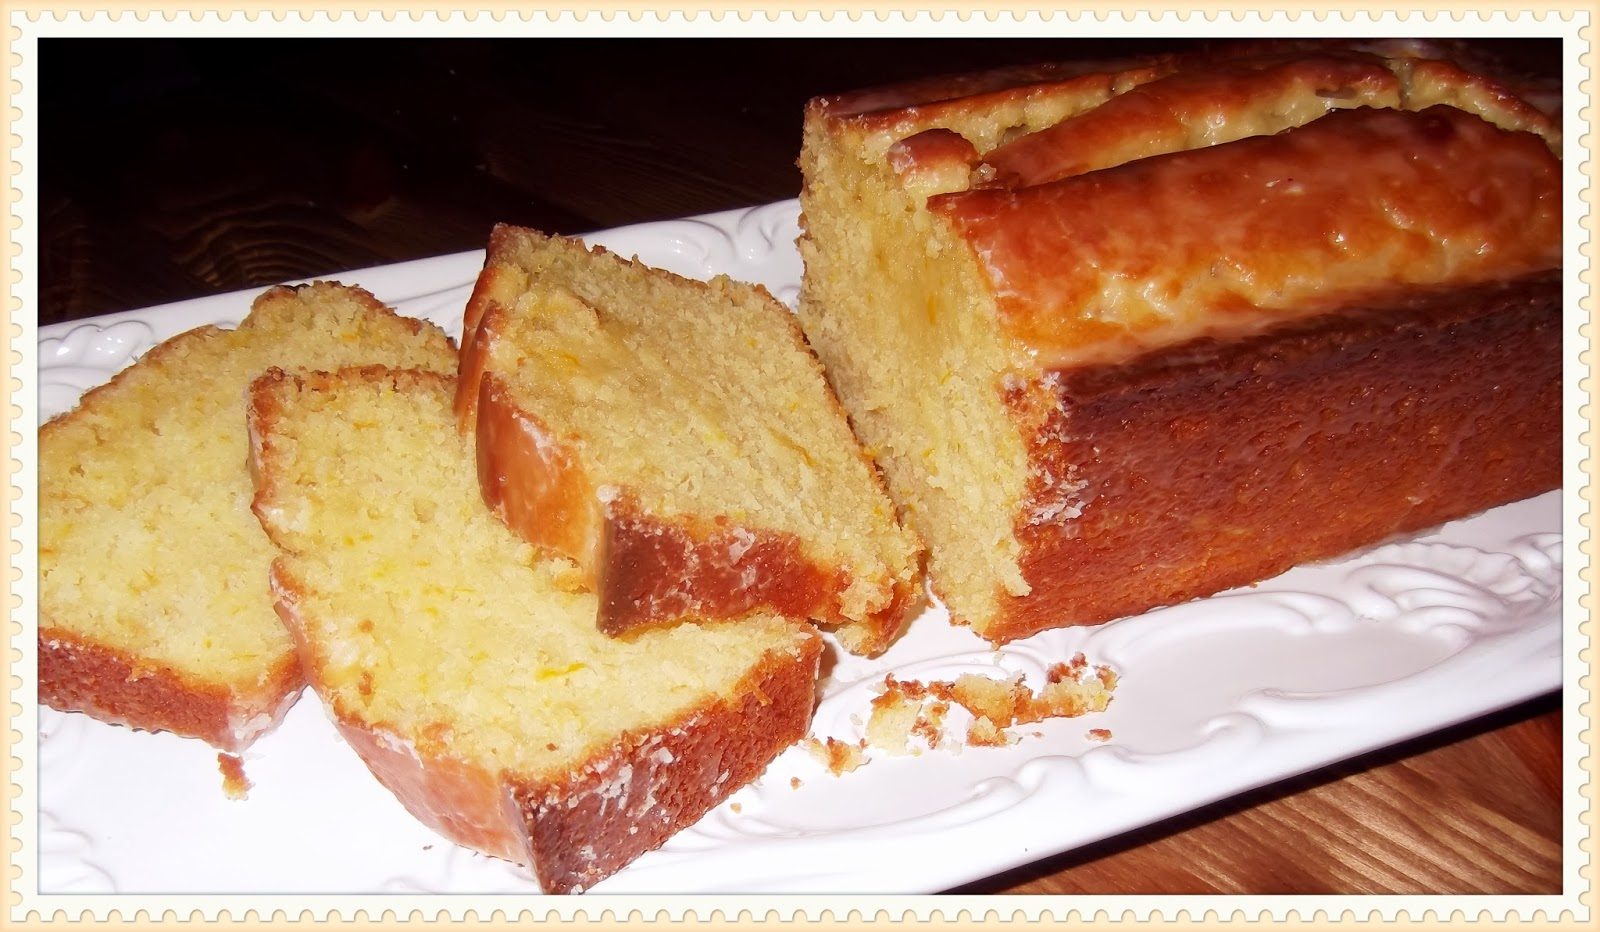 Rosie's Country Baking: Glazed Orange Pound Cake